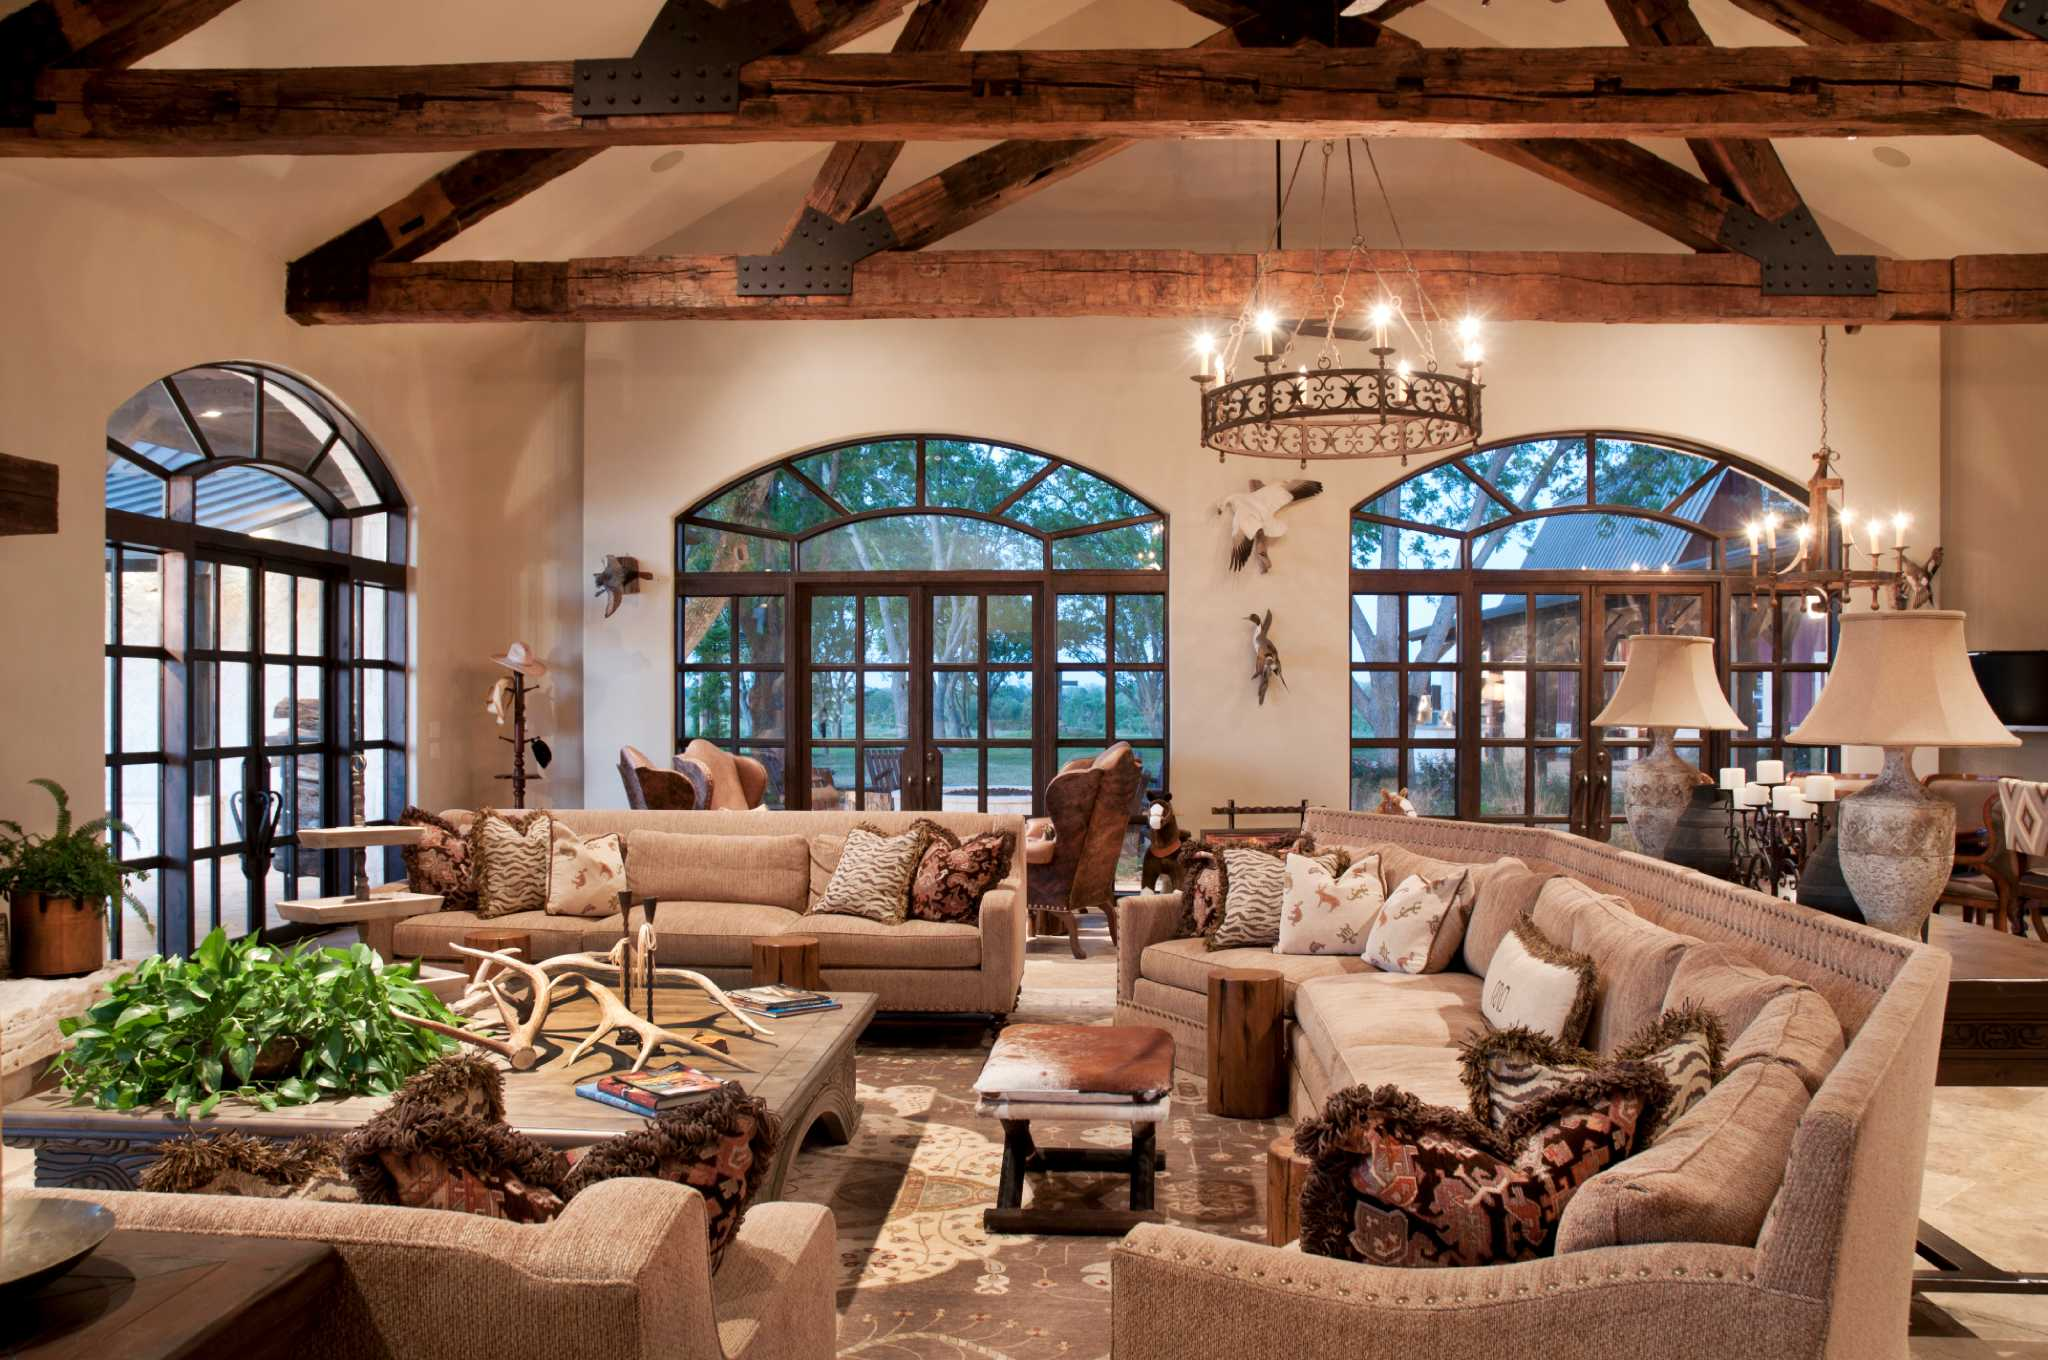 Take a tour of the Texas-sized ranch owned by a prominent ...